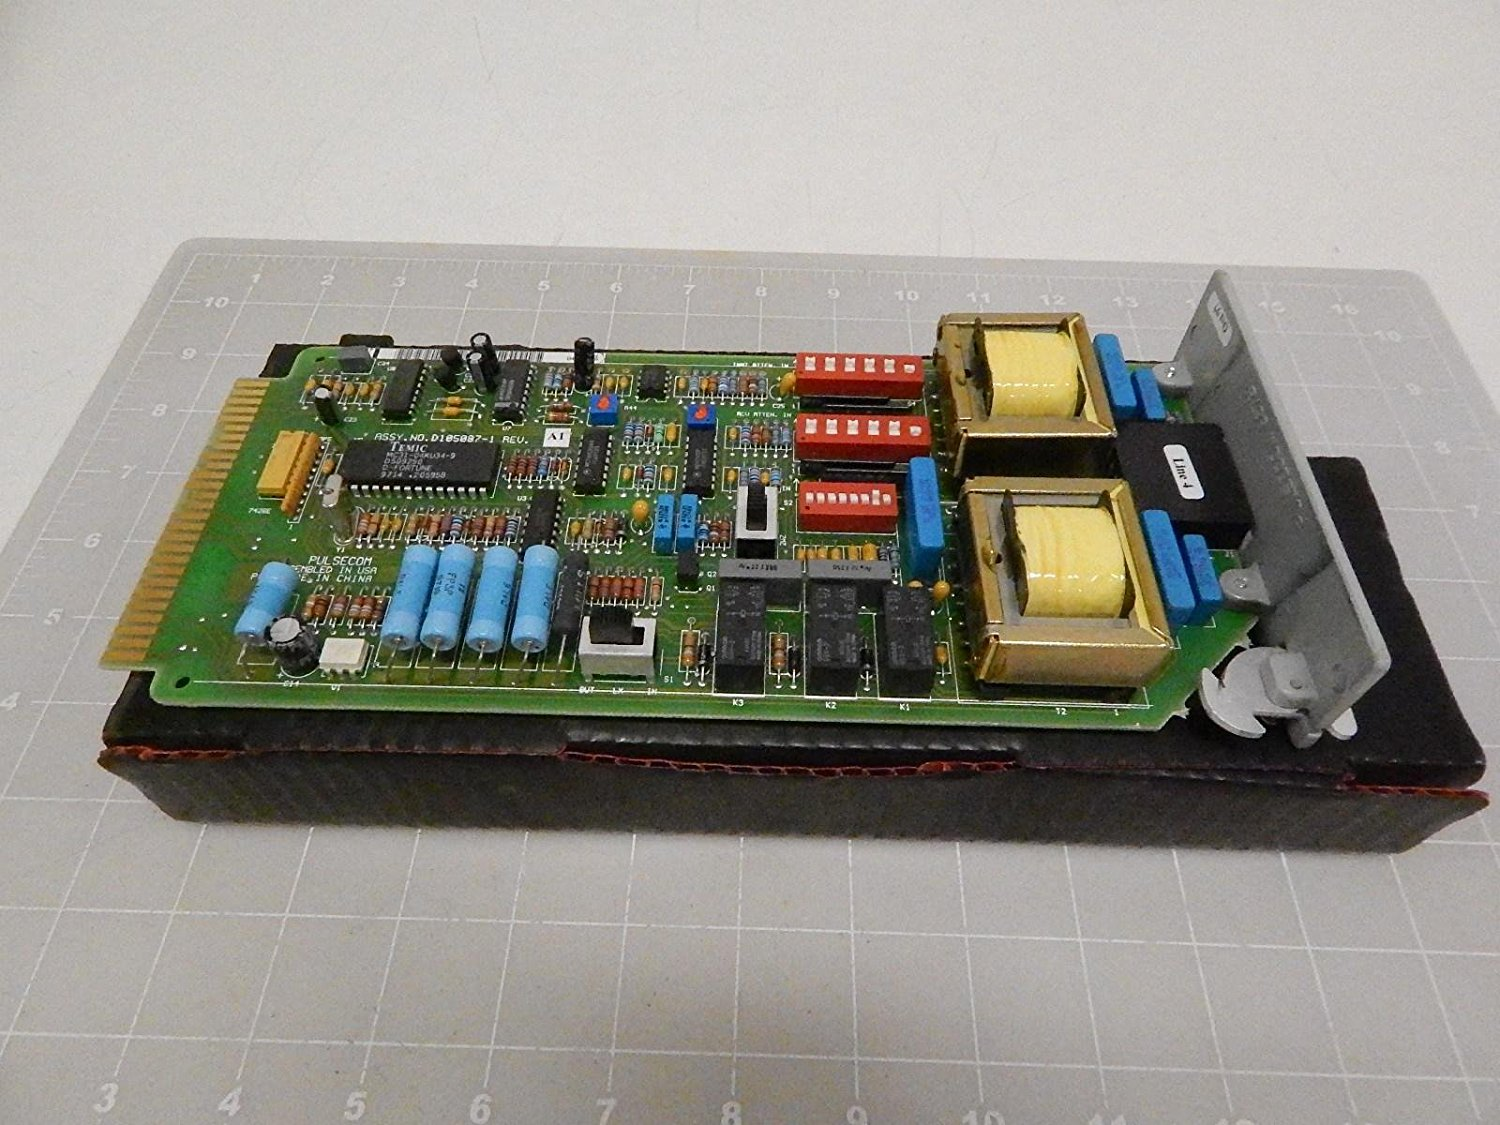 Pulsecom D105087-1, 2FXS-2L1 Circuit Board Module Like New Condition